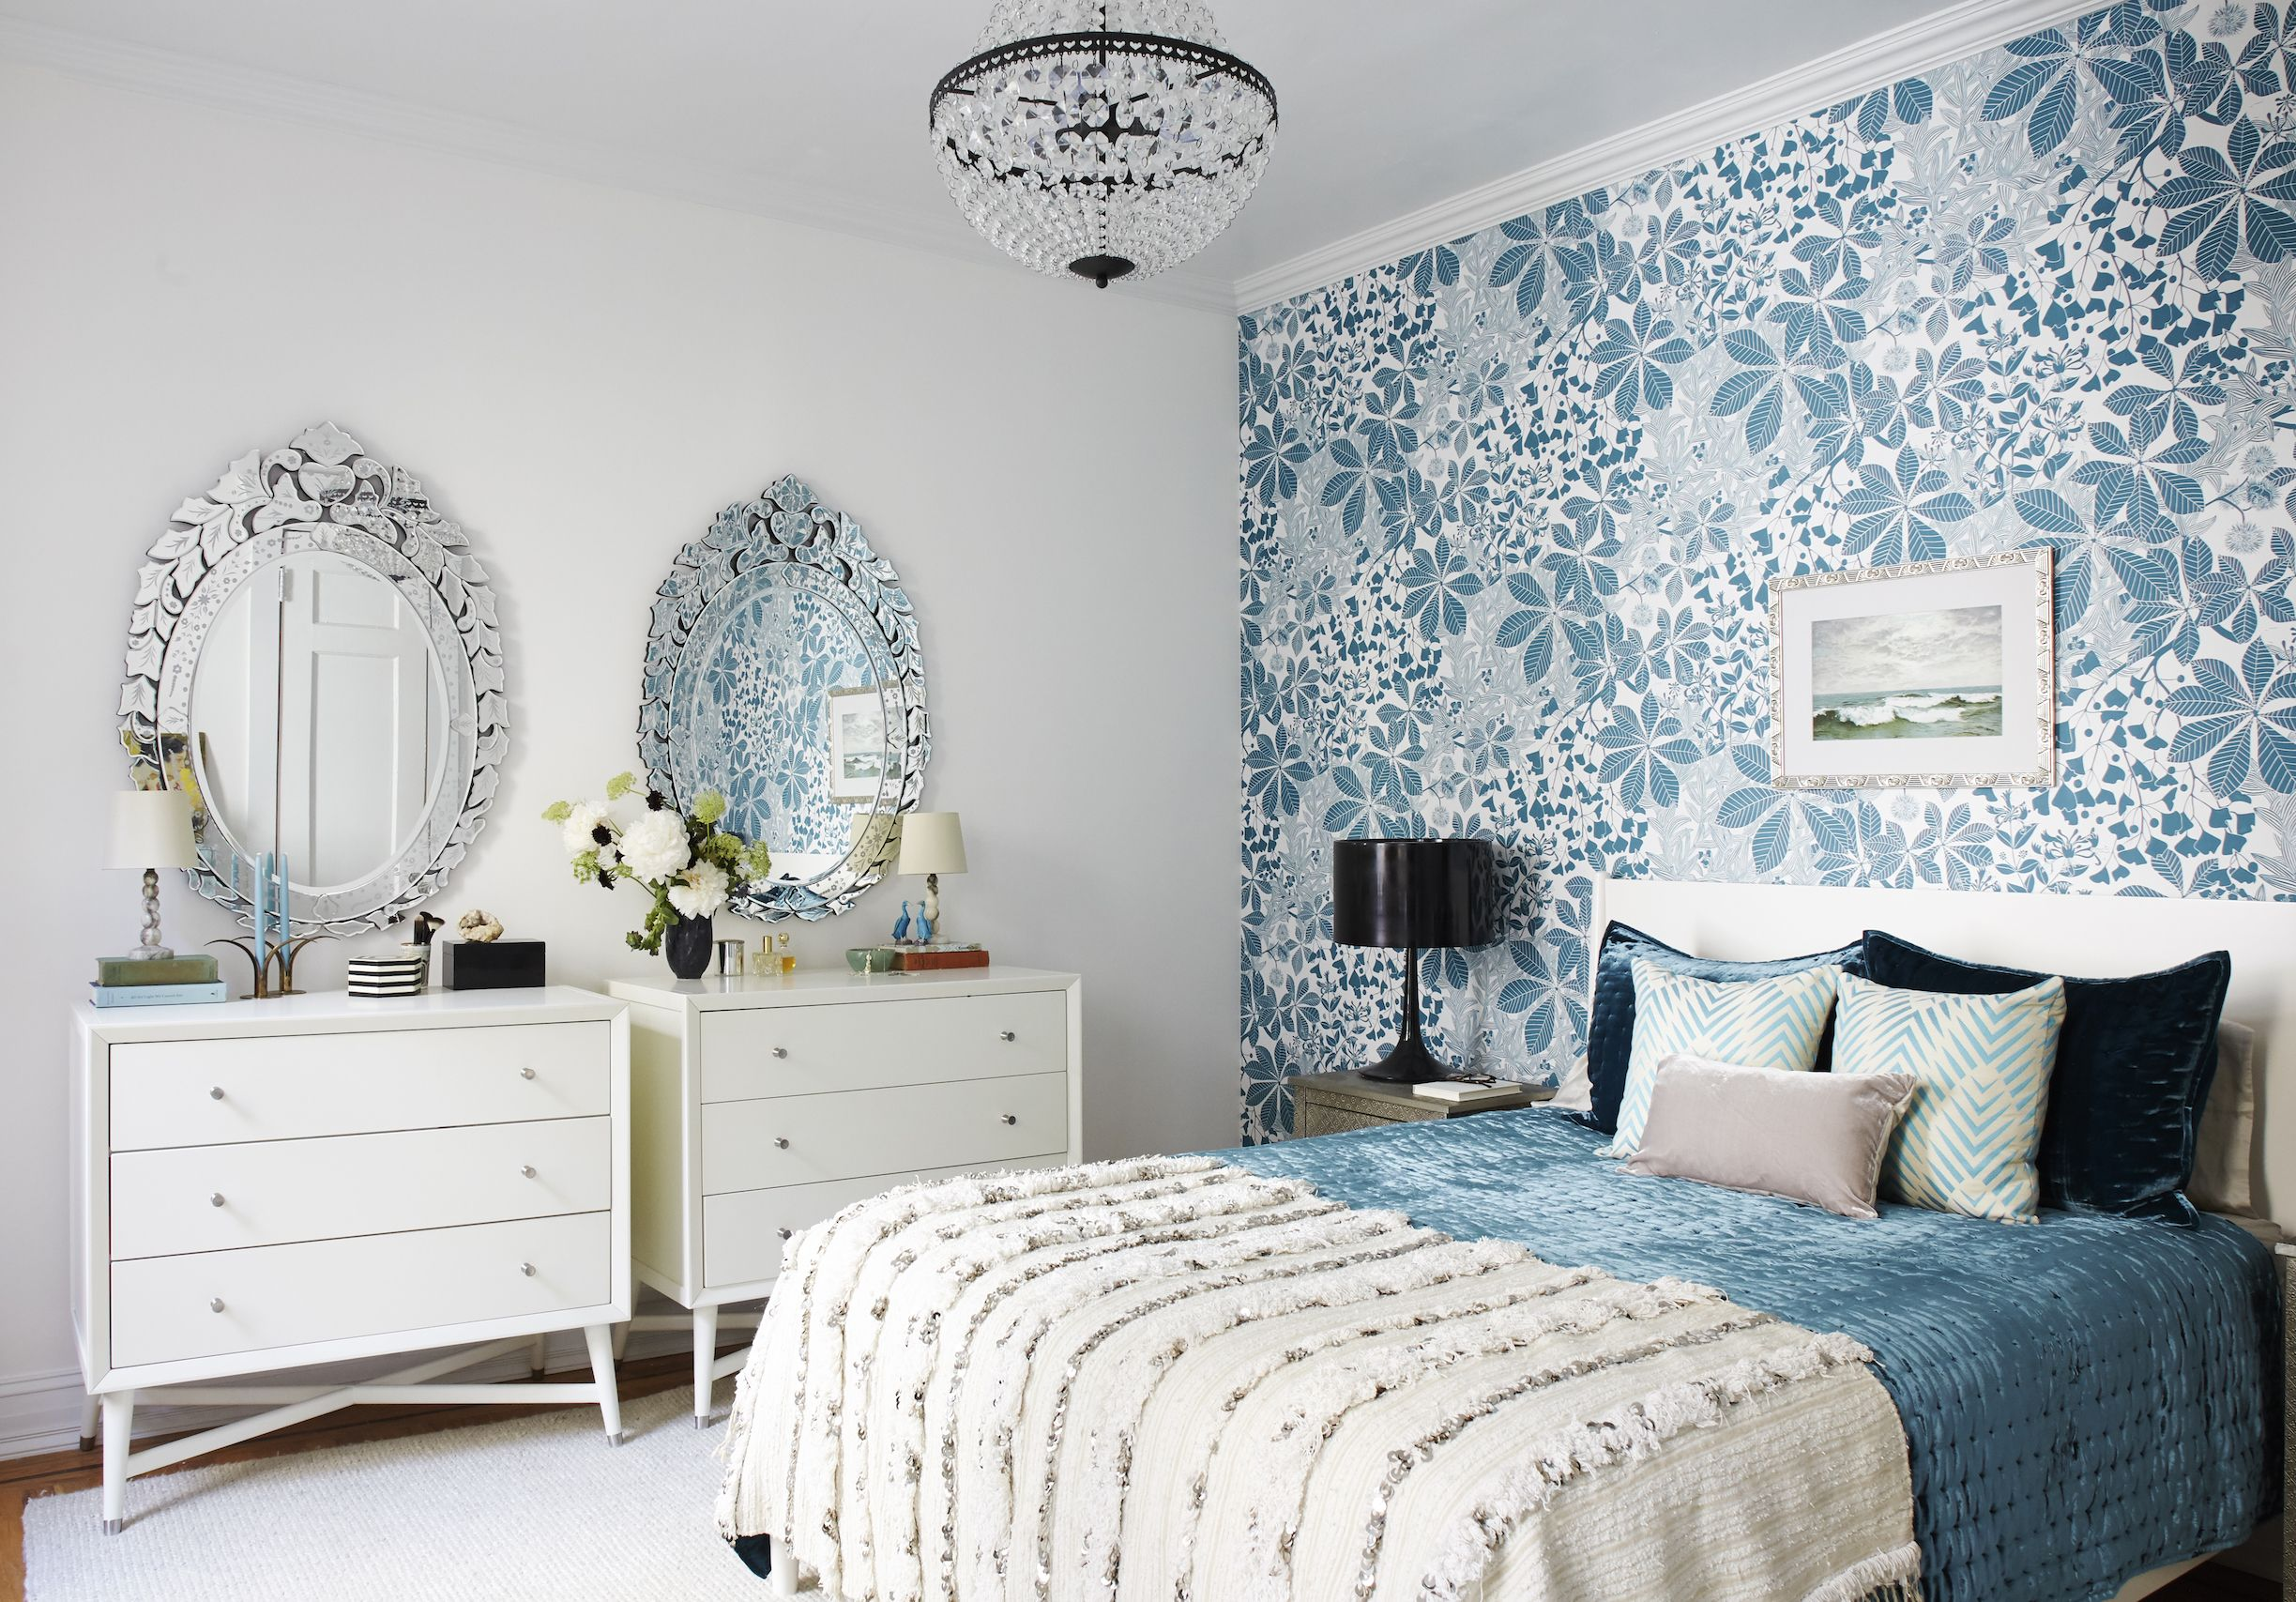 Cool Bedroom Decor Tips | Flooring, Wall Tiles, Furniture & More!